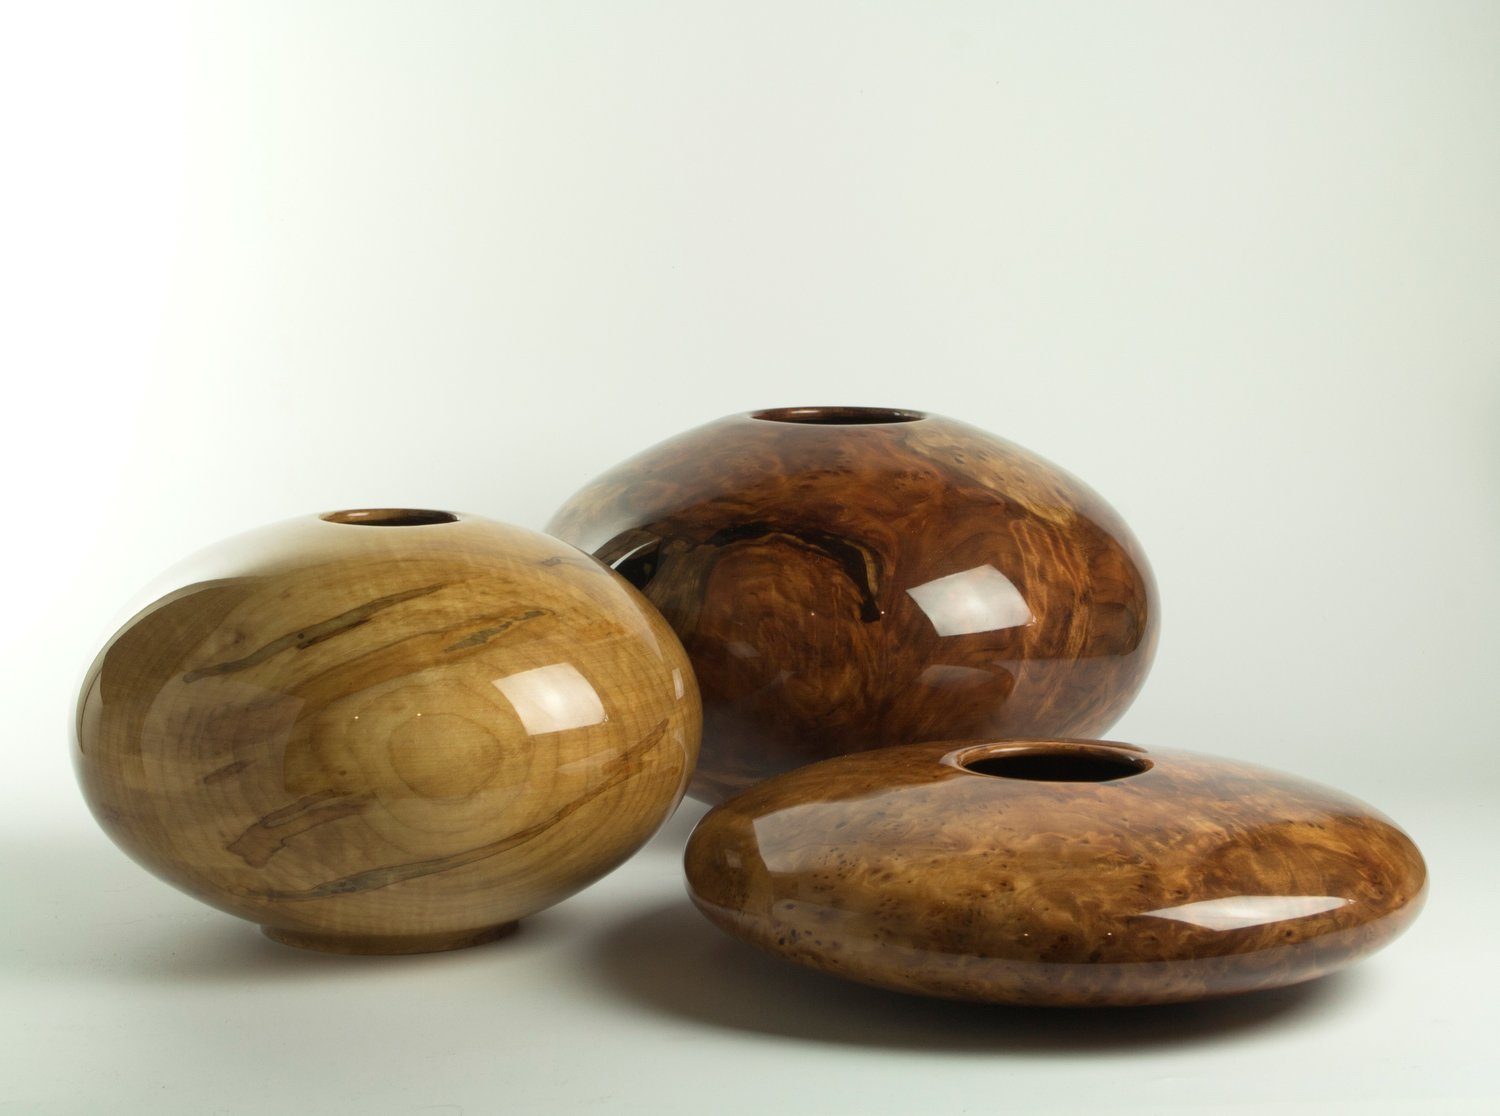 These three bowls are examples of Philip and Matt Moulthrop's creations with Western woods.